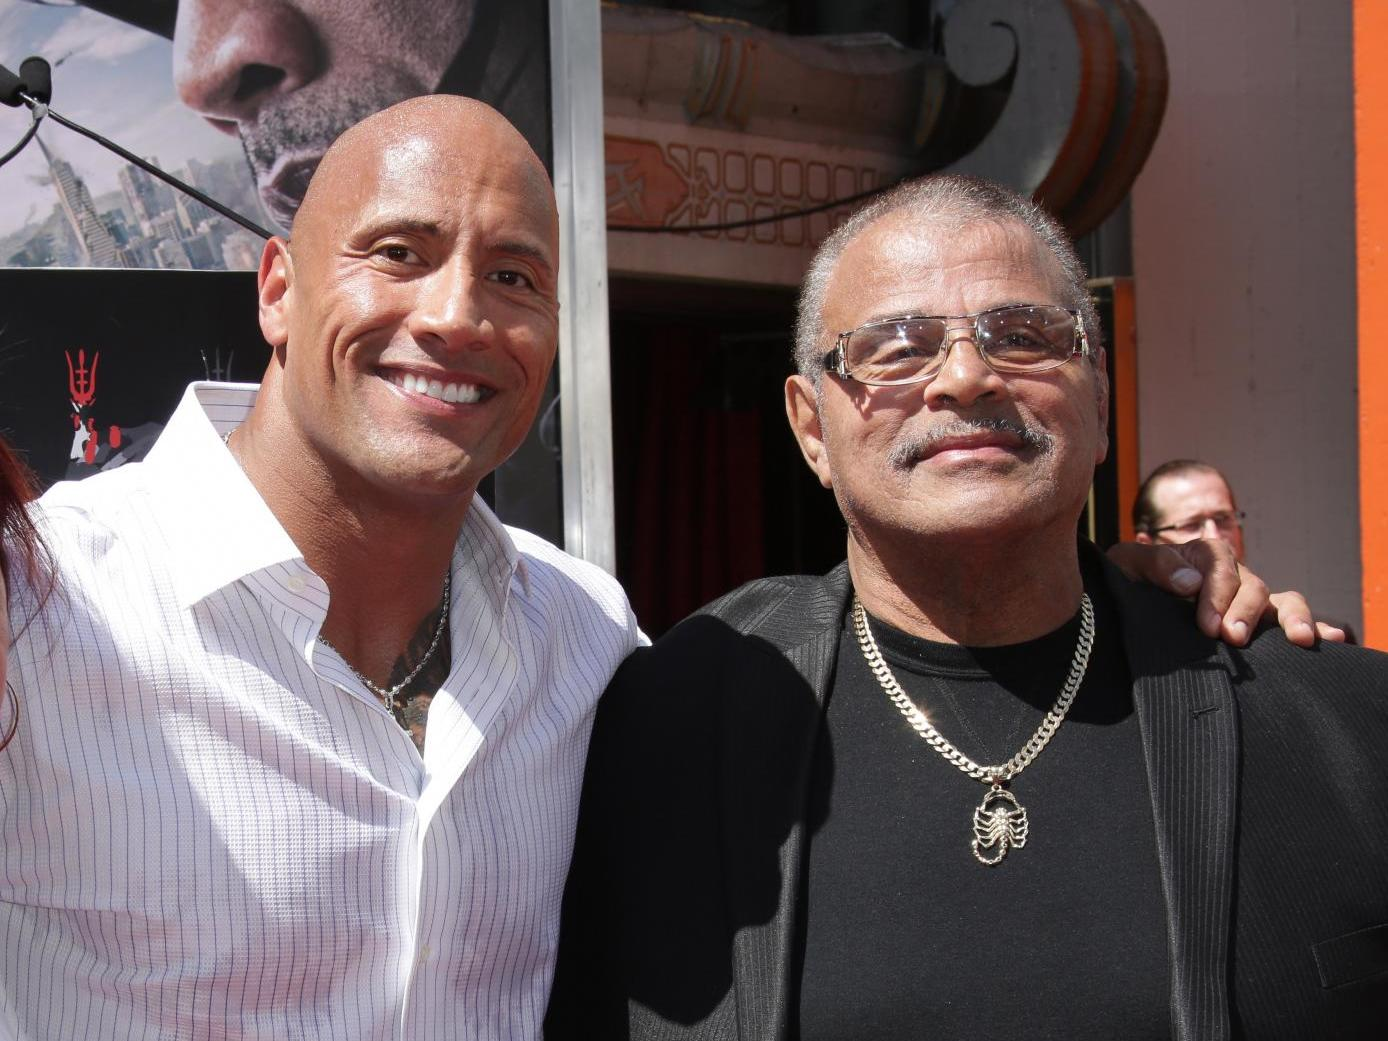 Dwayne Johnson confirms father Rocky's cause of death in emotional t…